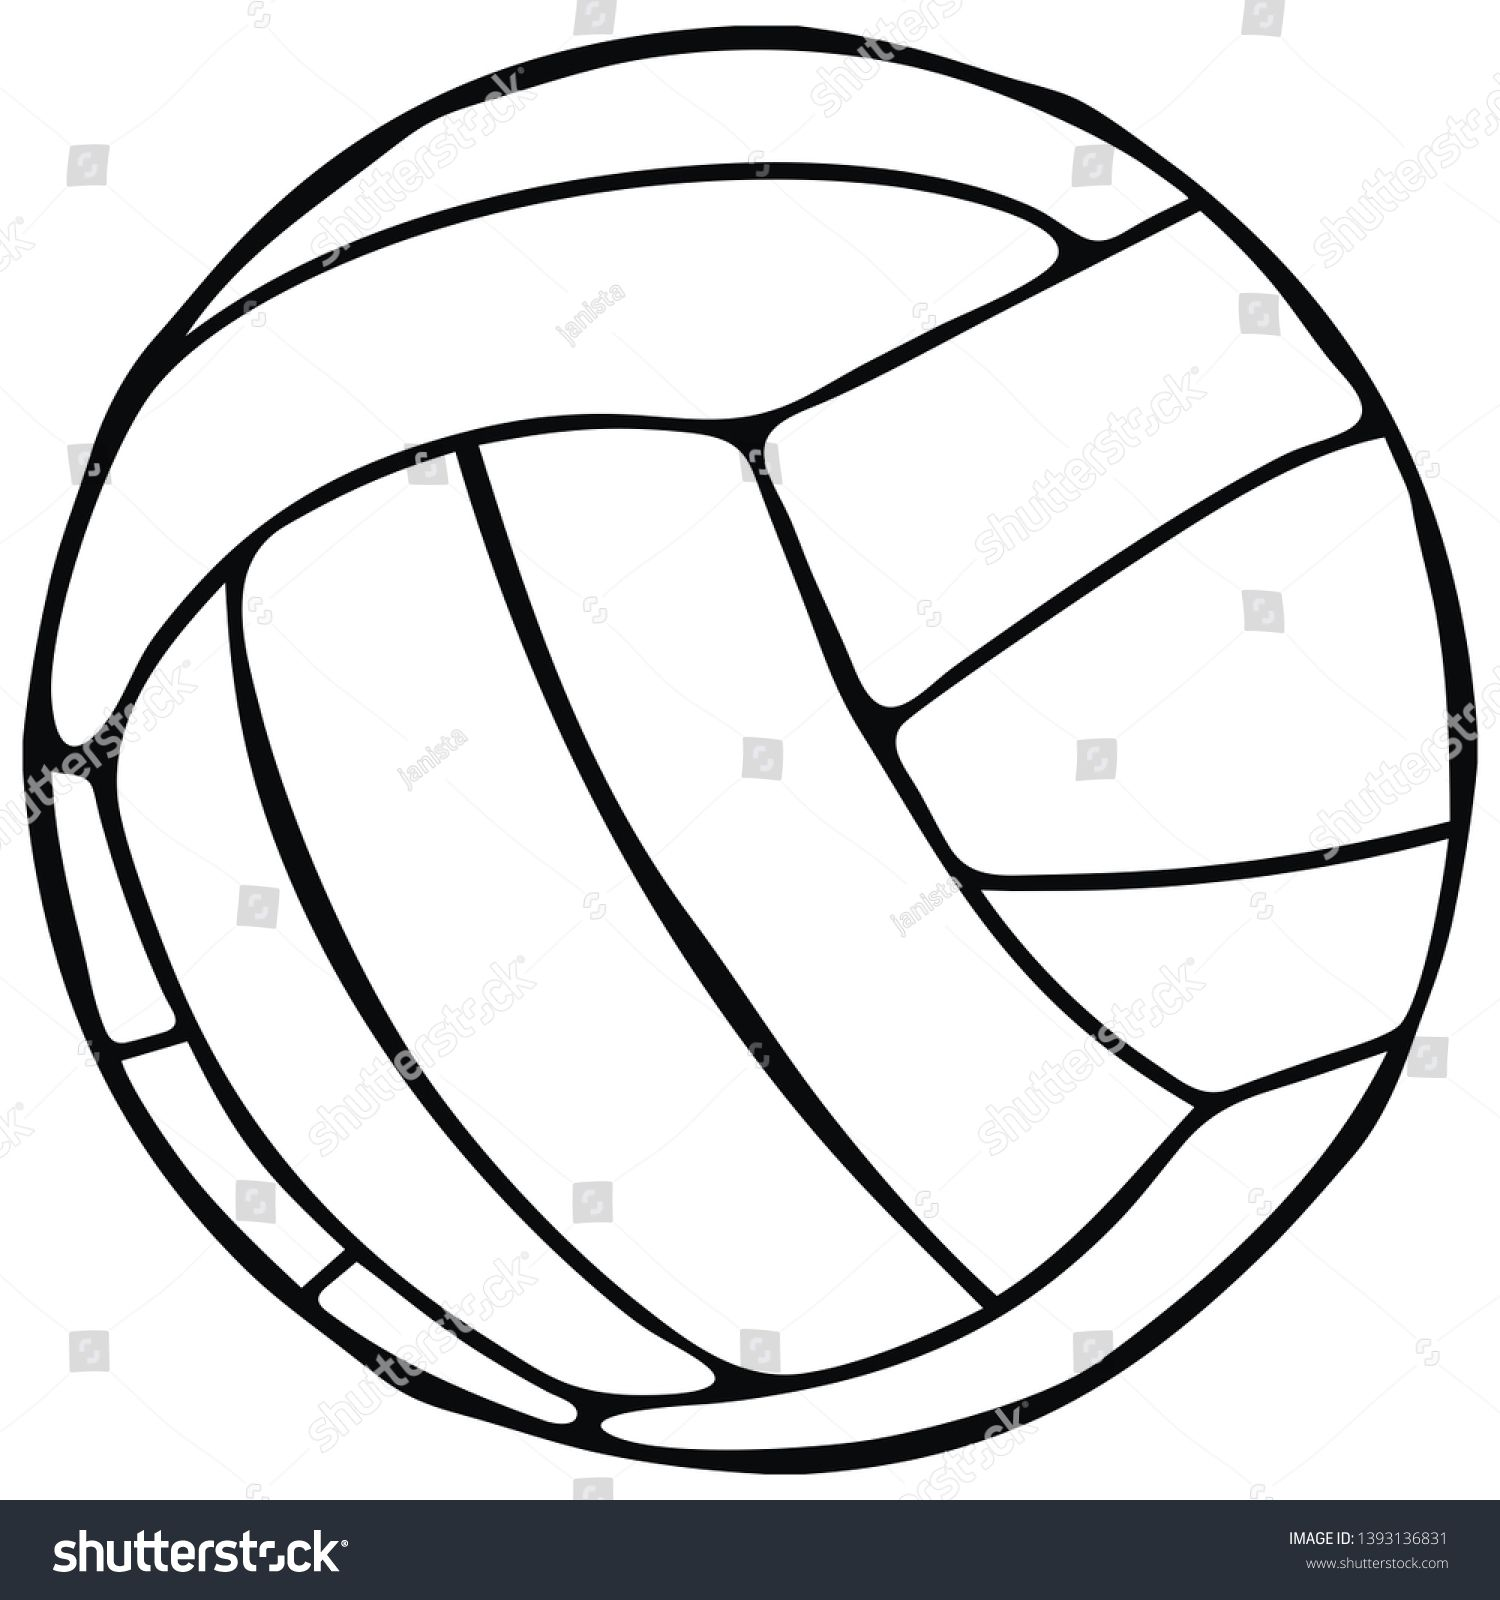 Volleyball Single Object Sports Ball Vector Icon Black And White Contour Drawing Sponsored Sponsored S Sports Balls Contour Drawing Branding Mockups